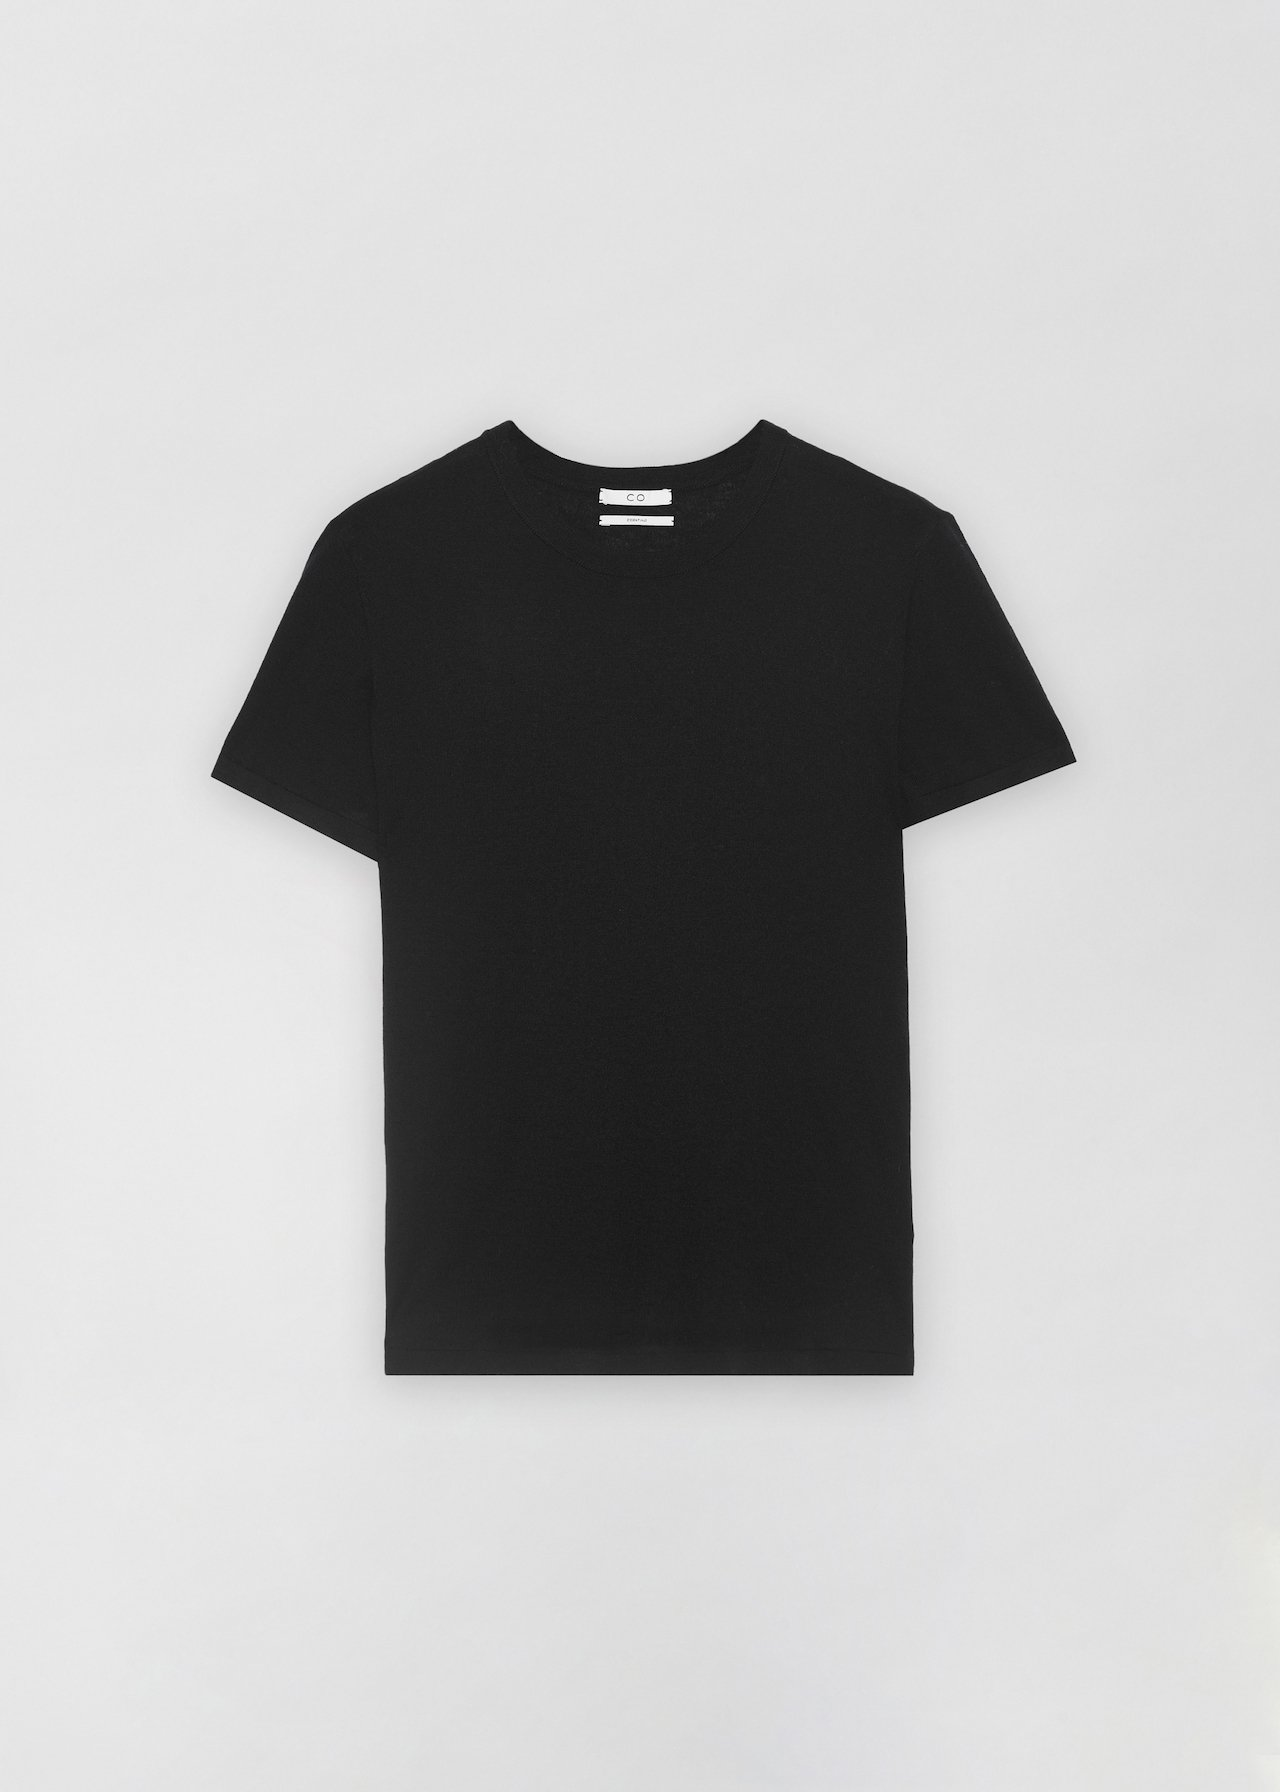 Cashmere T-Shirt - Grey in Black by Co Collections